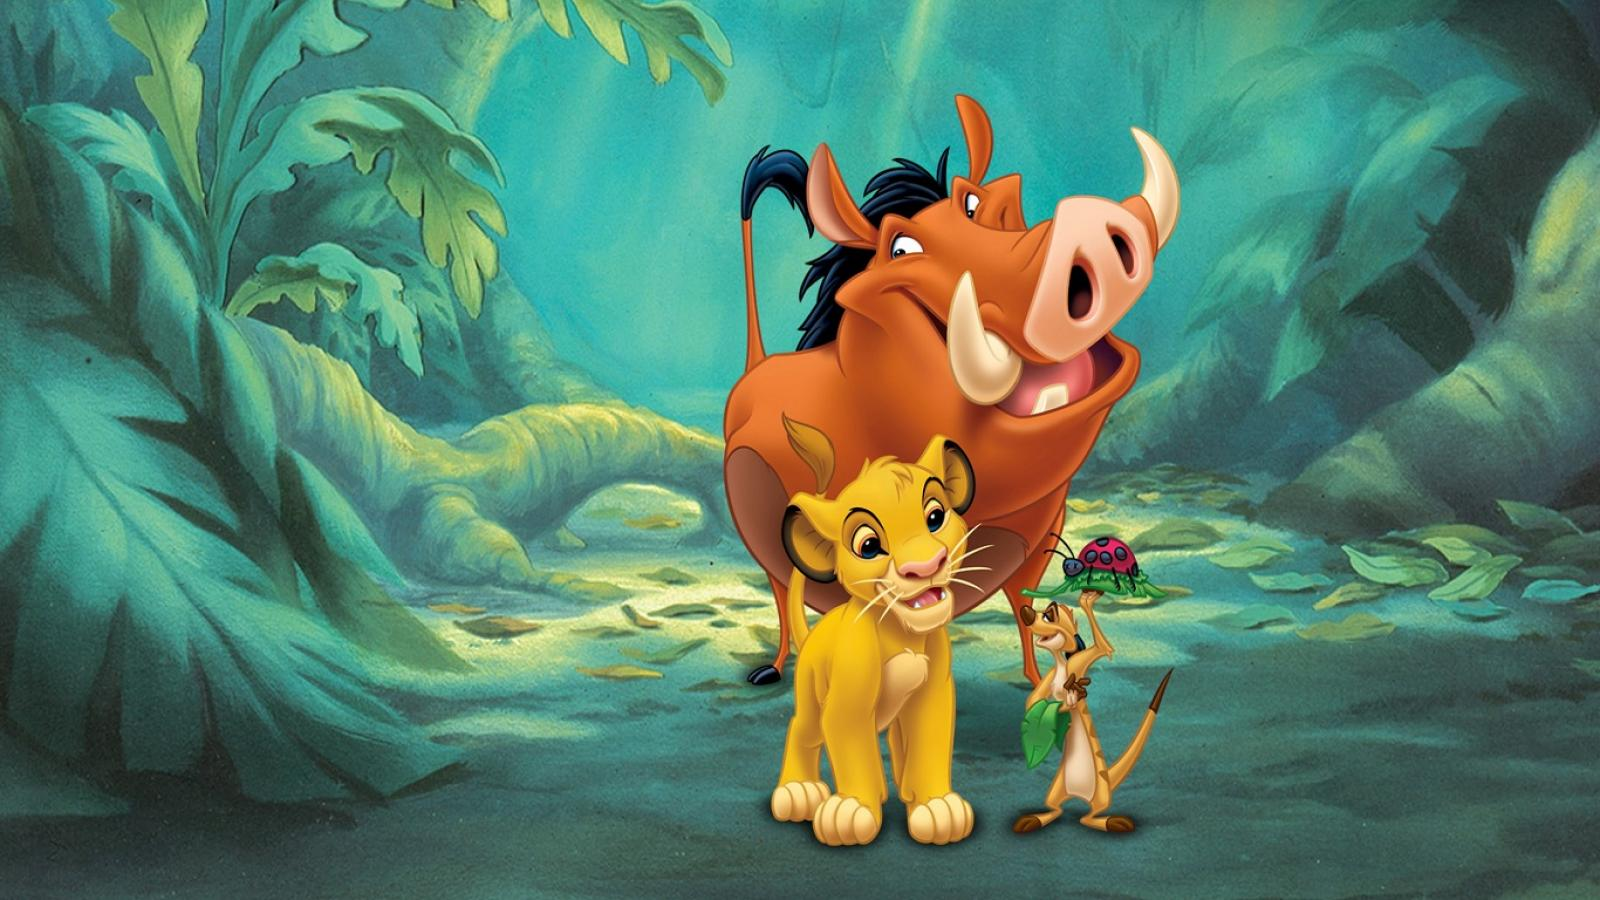 The lion king wallpaper and background image 1600x900 - Lion king wallpaper ...